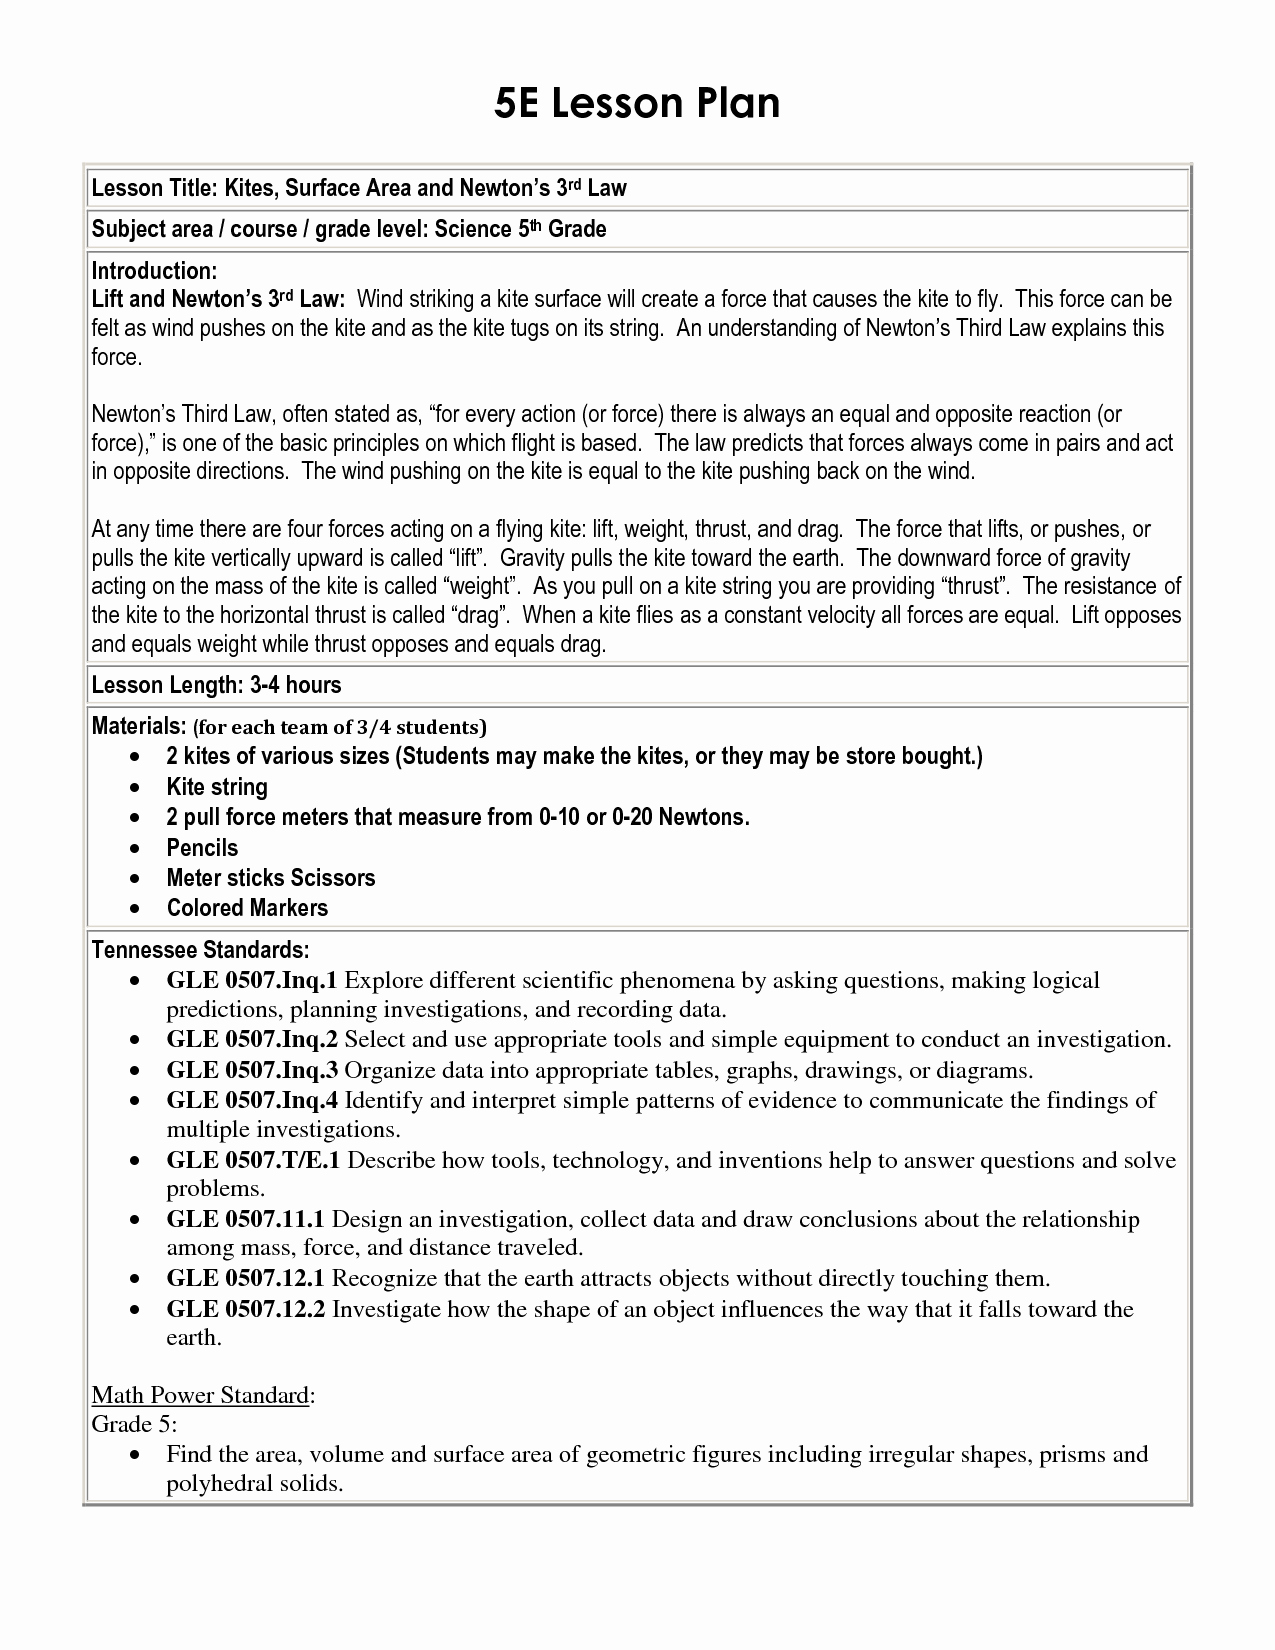 Standard Based Lesson Plan Template Beautiful 5 E Lesson Plan Template